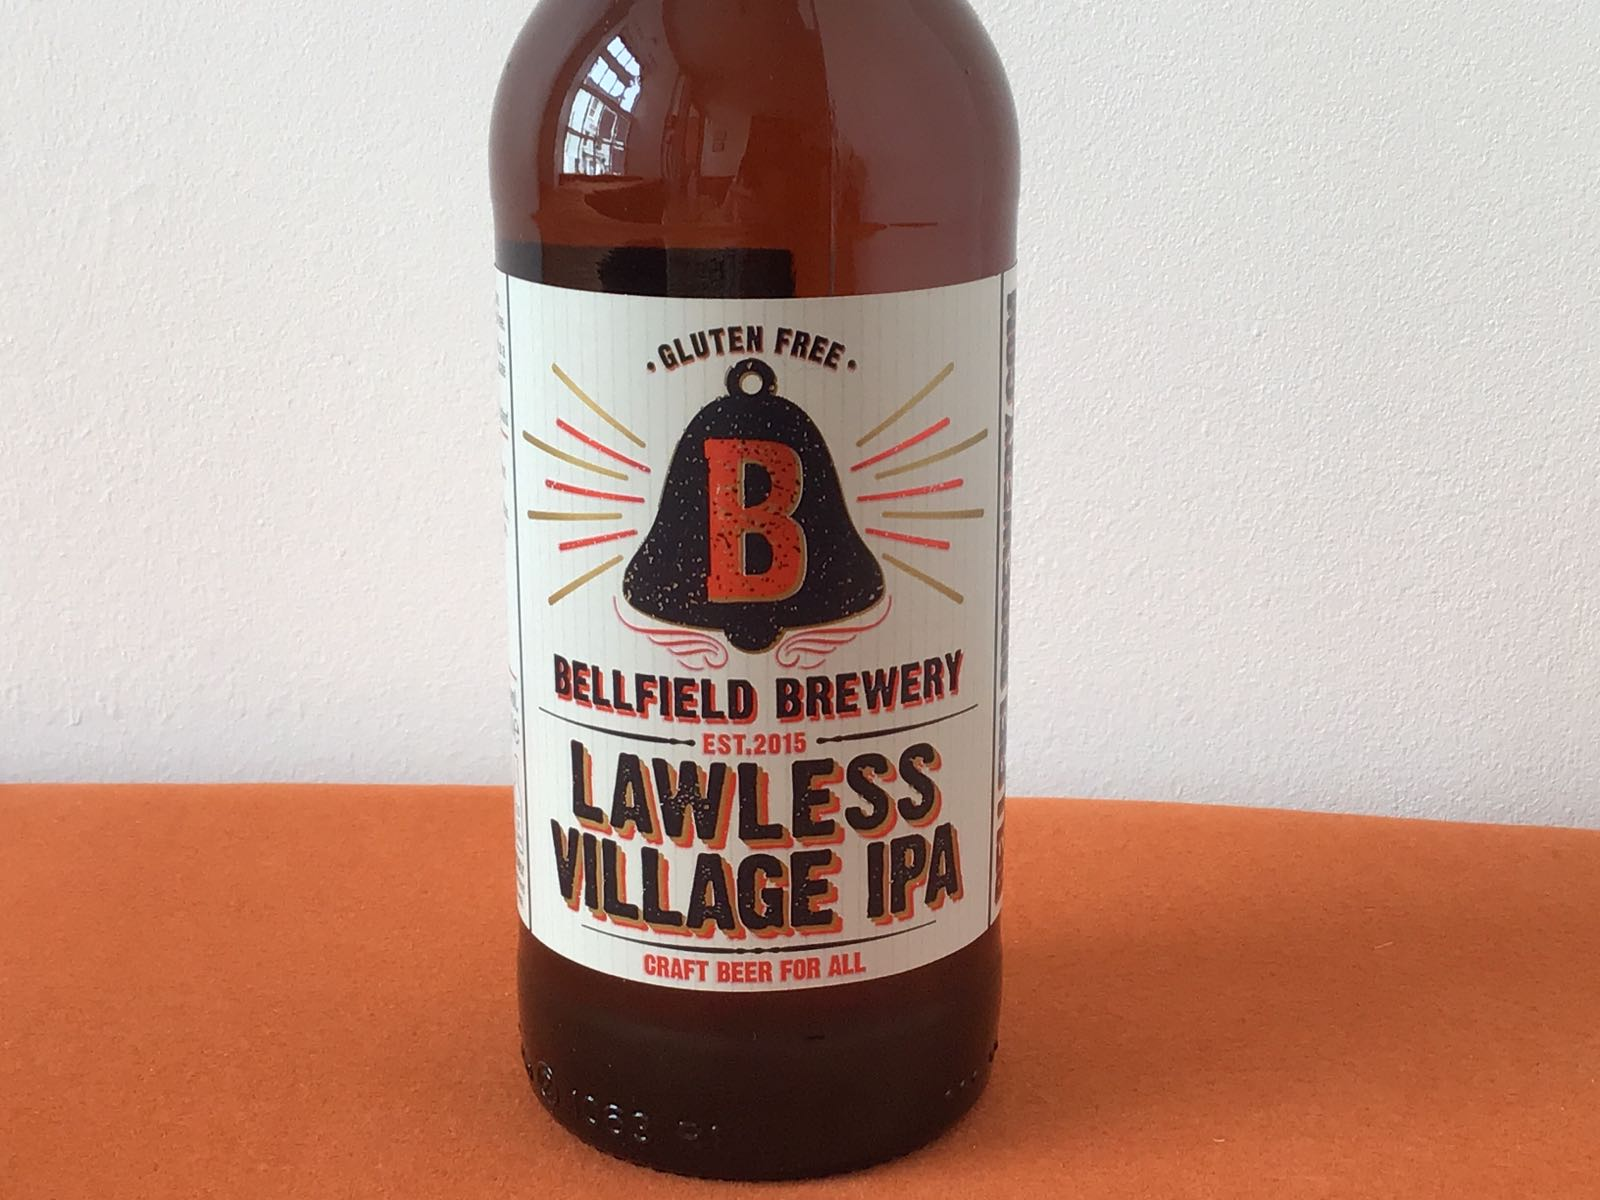 Bellfield Brewery: Lawless Village IPA Gluten  Free